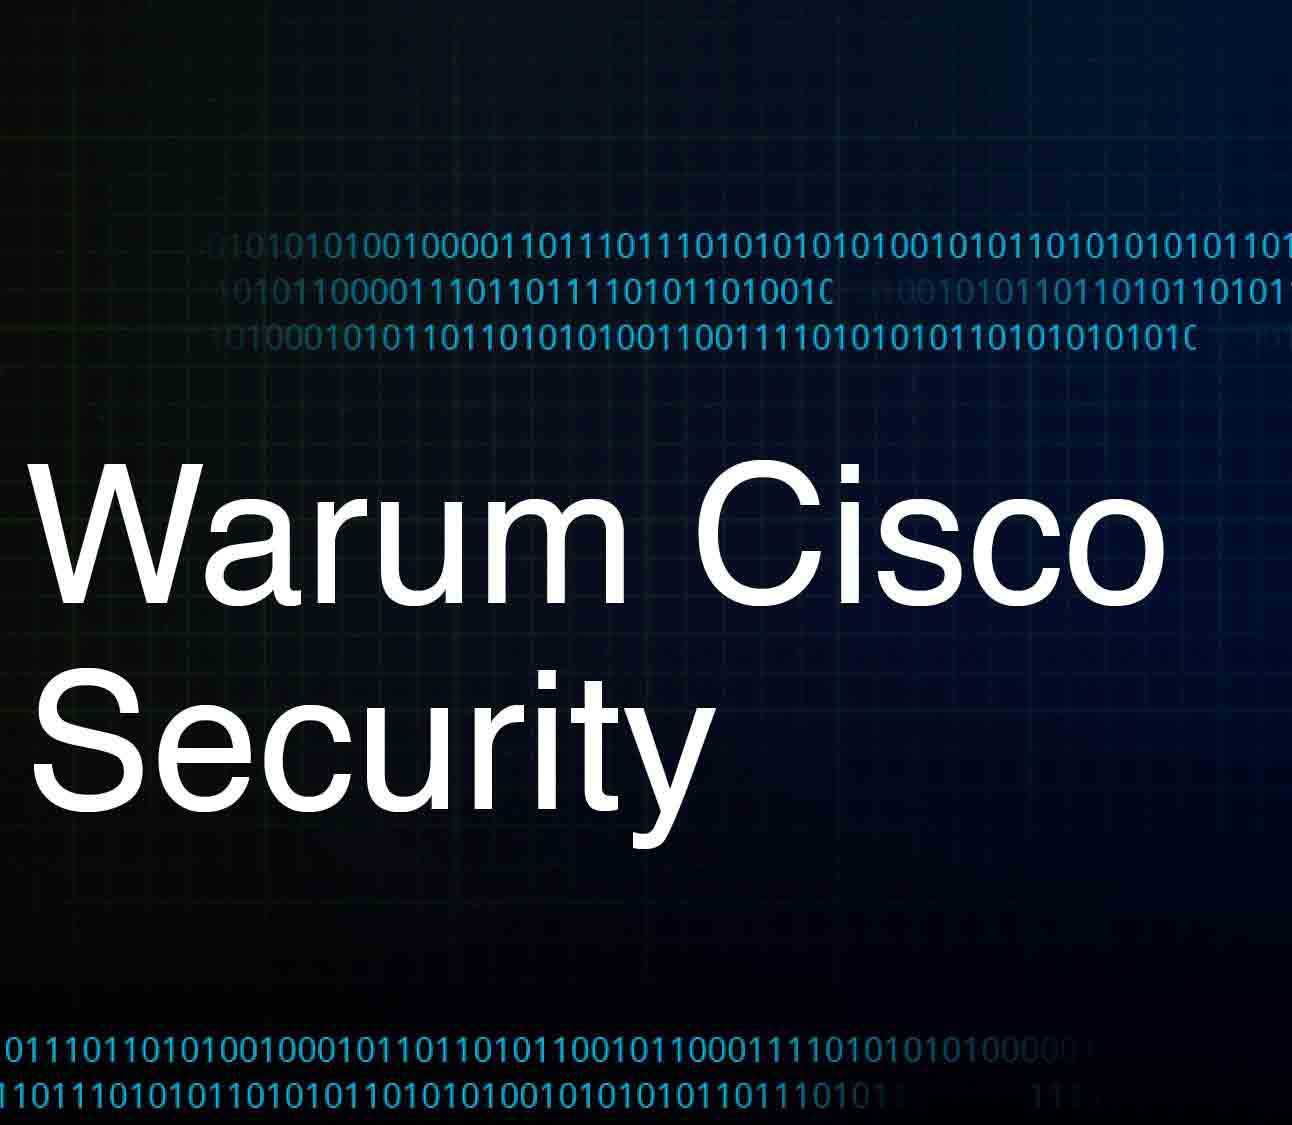 WARUM CISCO SECUITY Featured Image